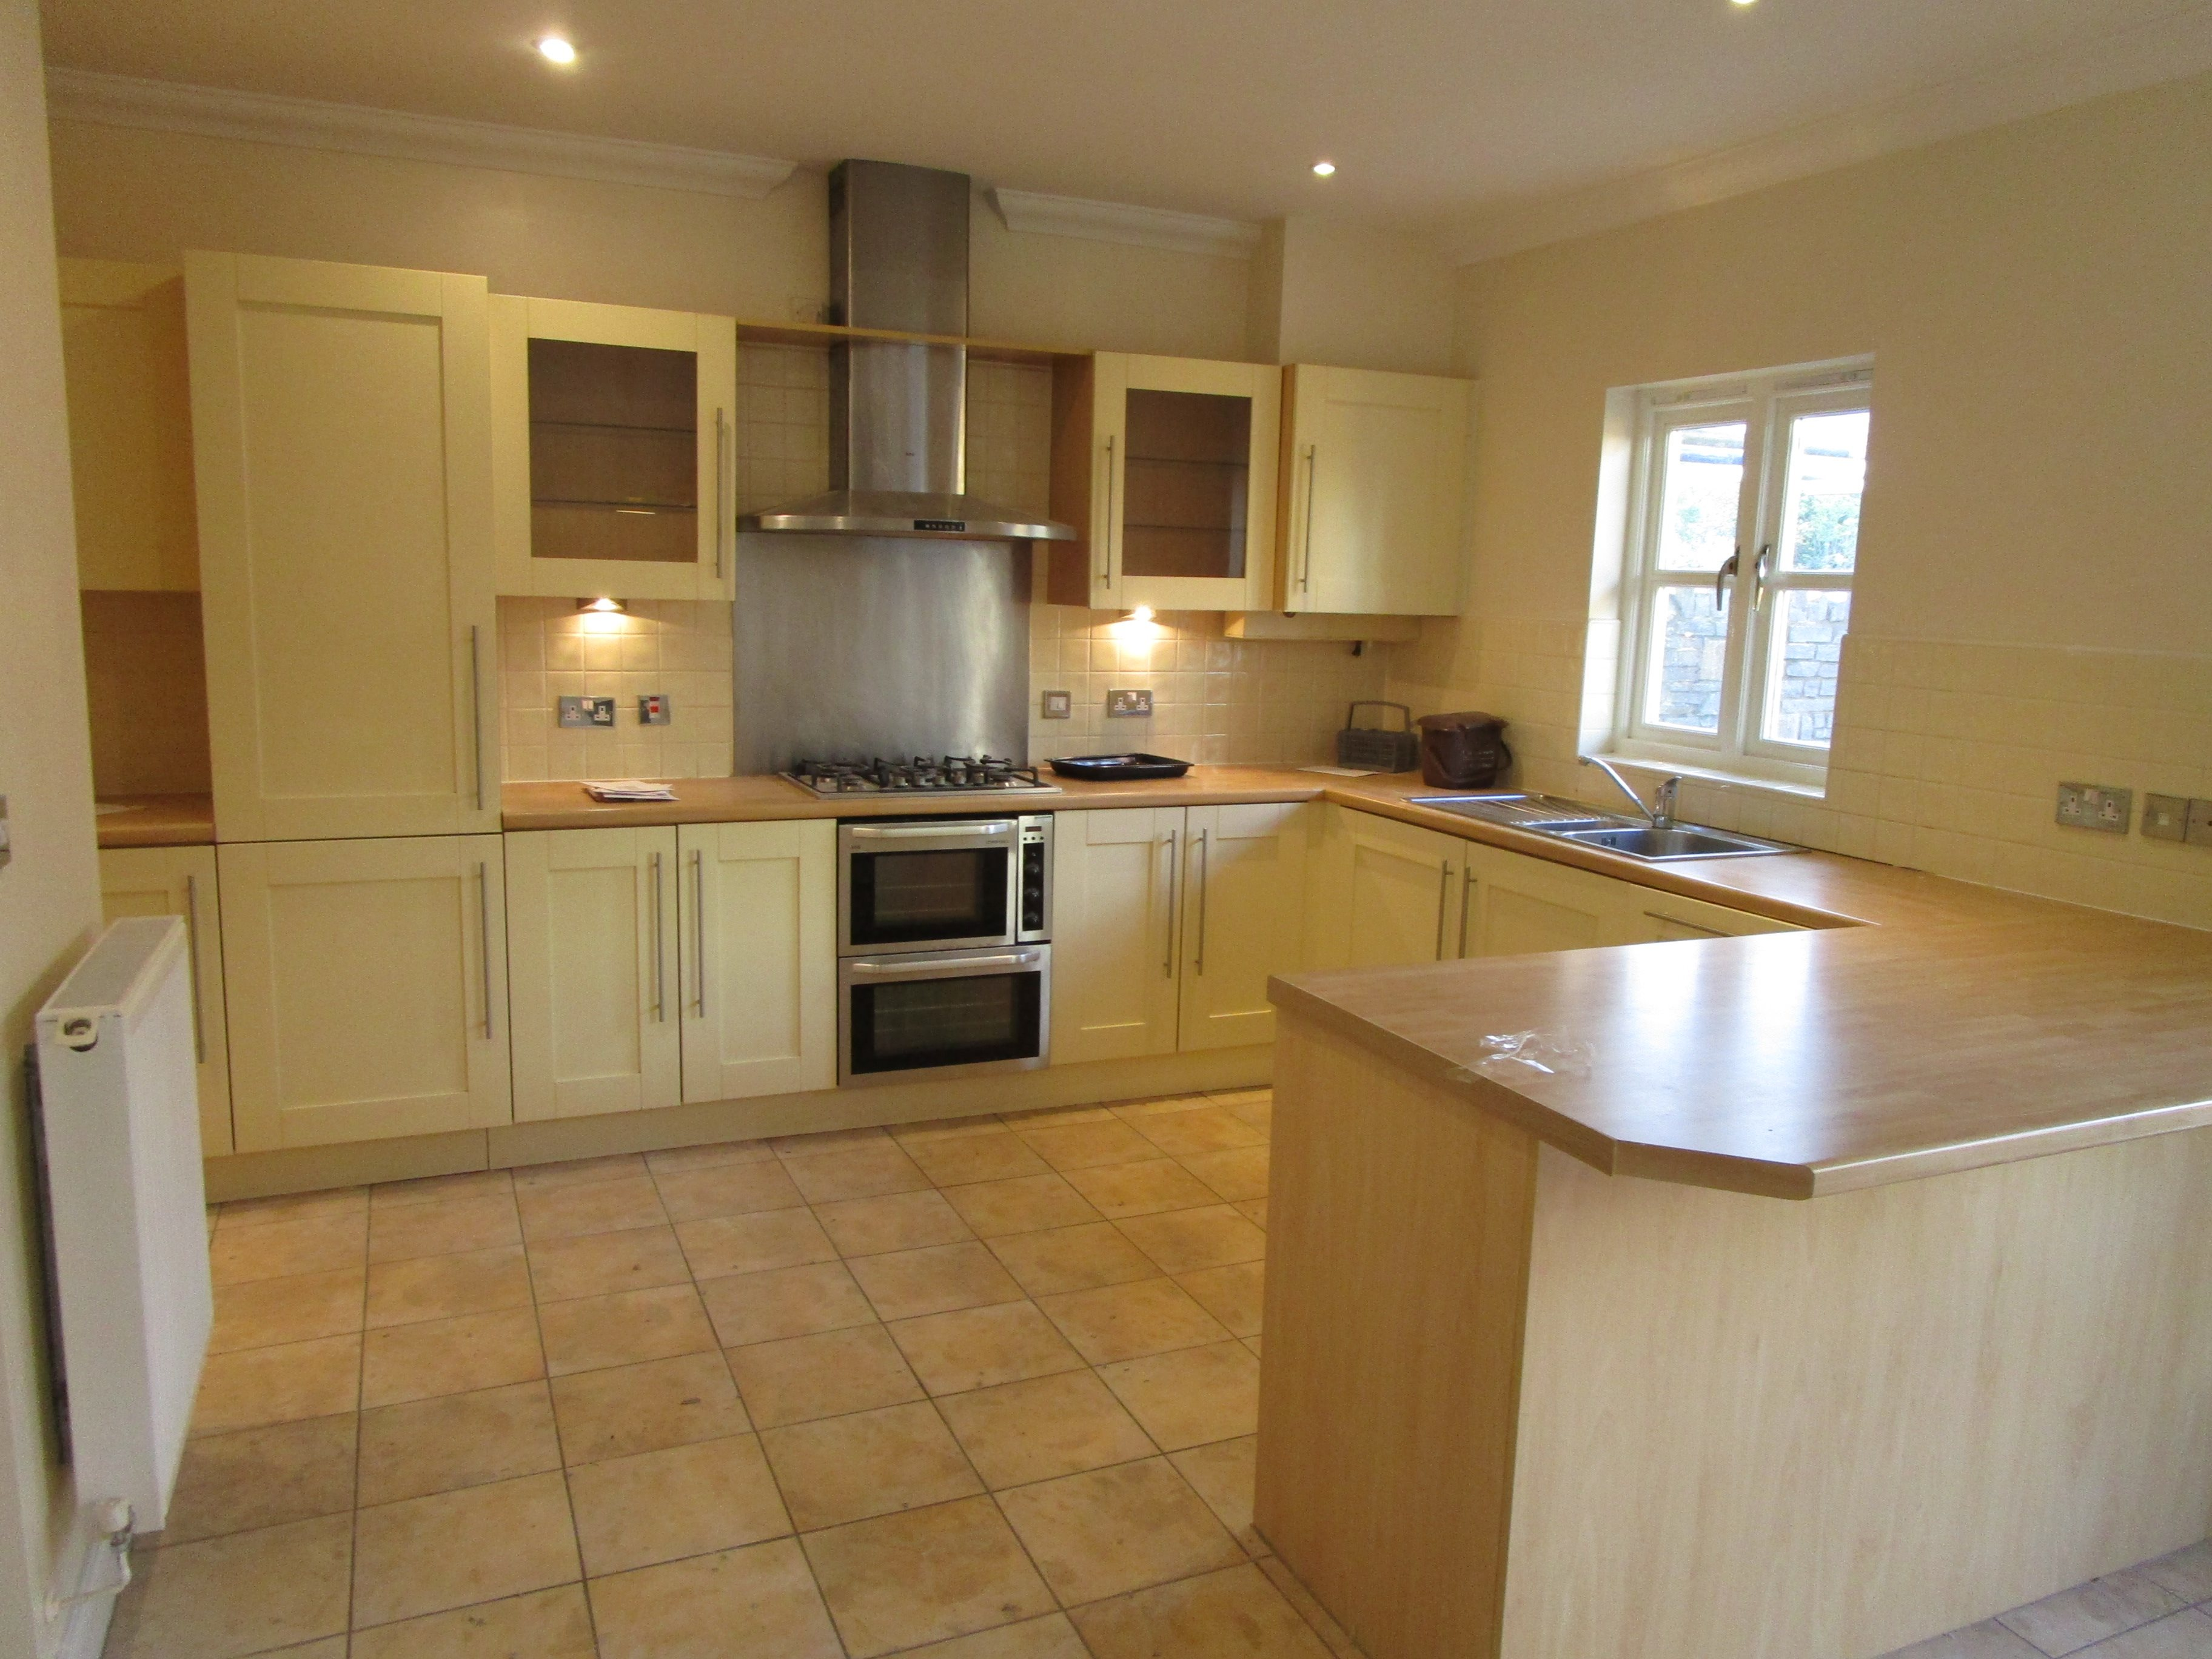 4 bed semi-detached-house to rent in Royal Victoria Park, Westbury on Trym, BS10